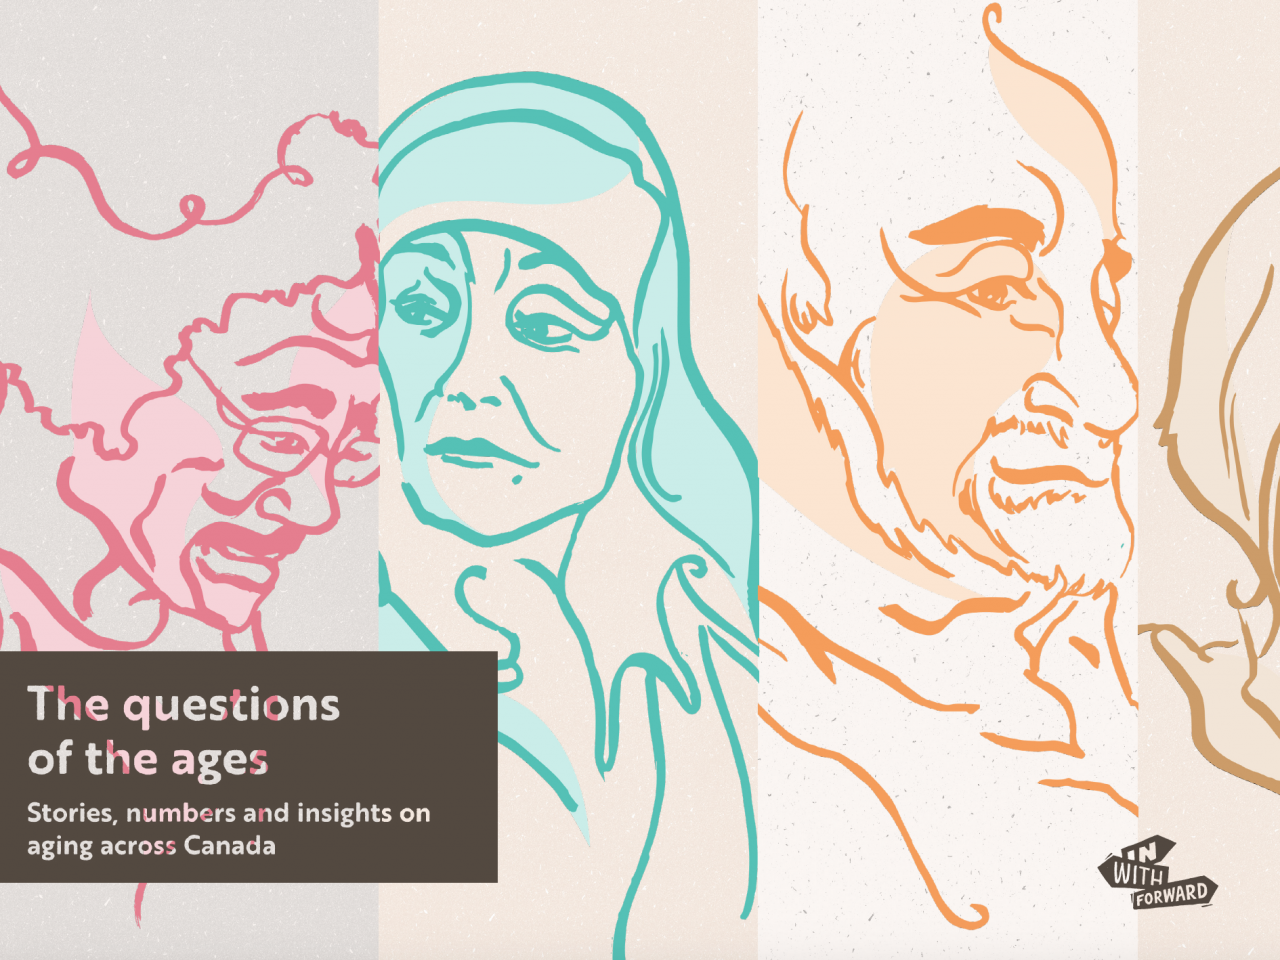 Questionsoftheages